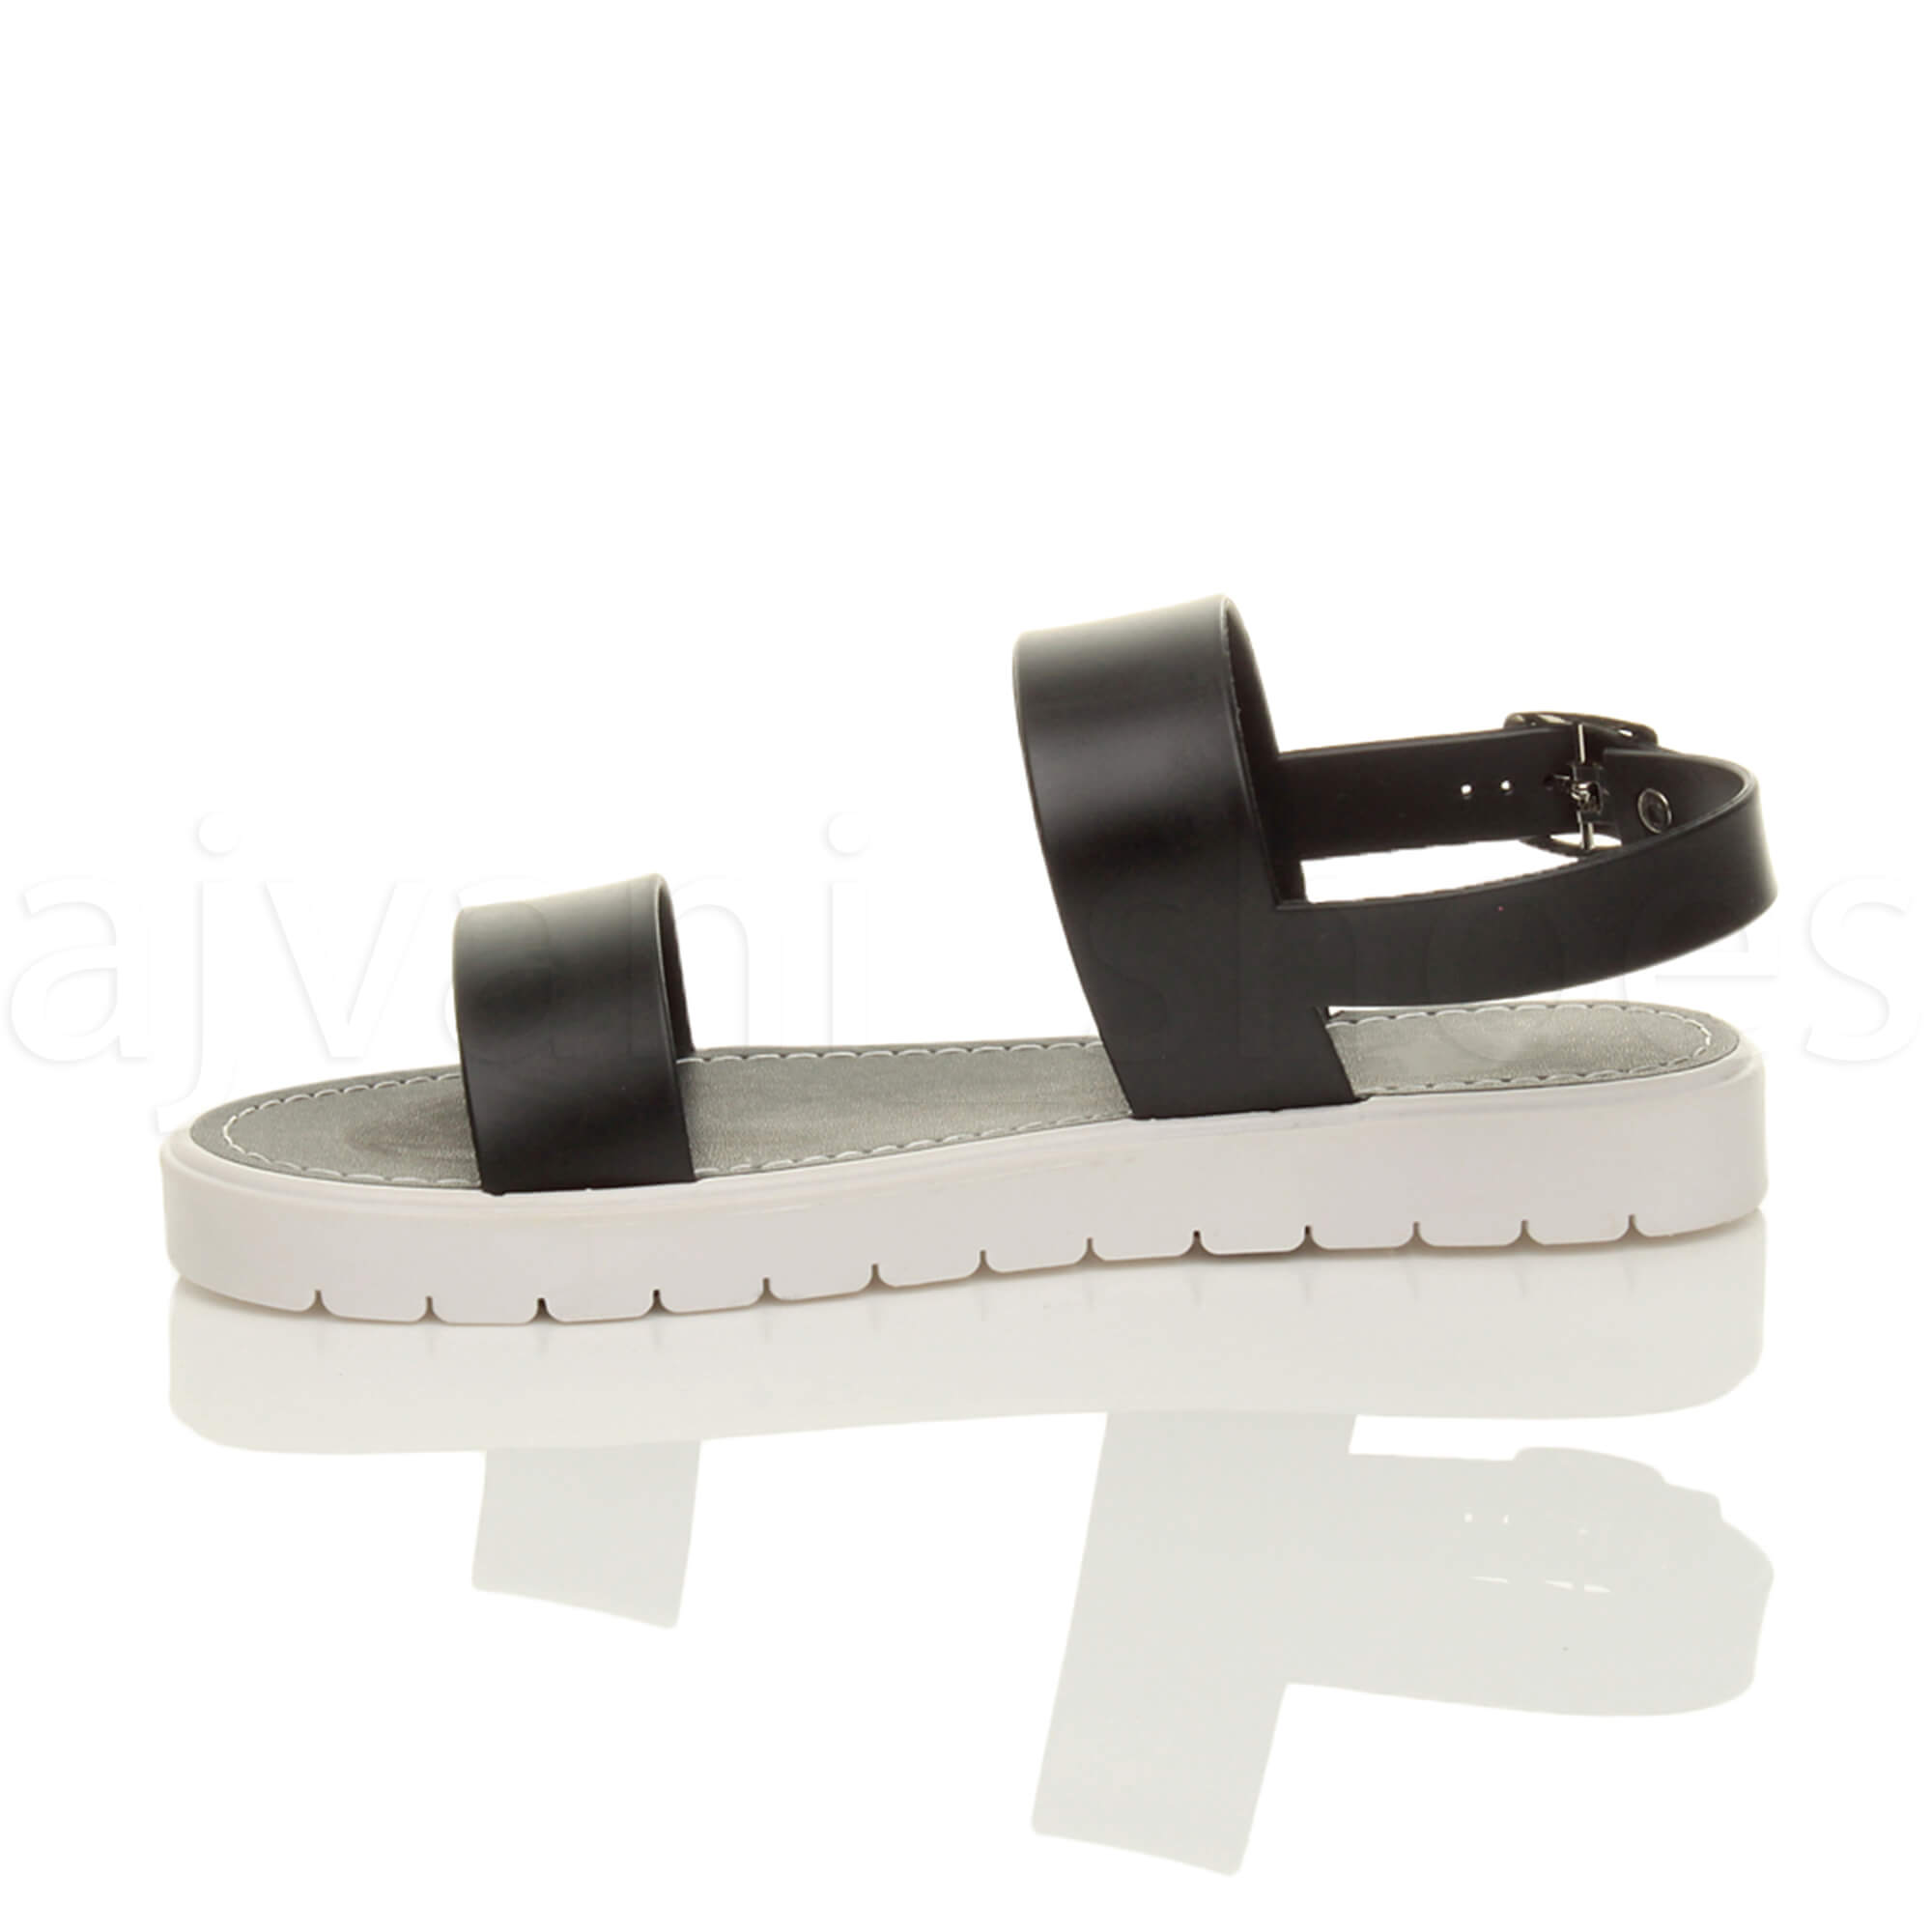 WOMENS-LADIES-FLAT-STRAPPY-BUCKLE-SLINGBACK-CLEATED-RUBBER-SUMMER-SANDALS-SIZE thumbnail 4